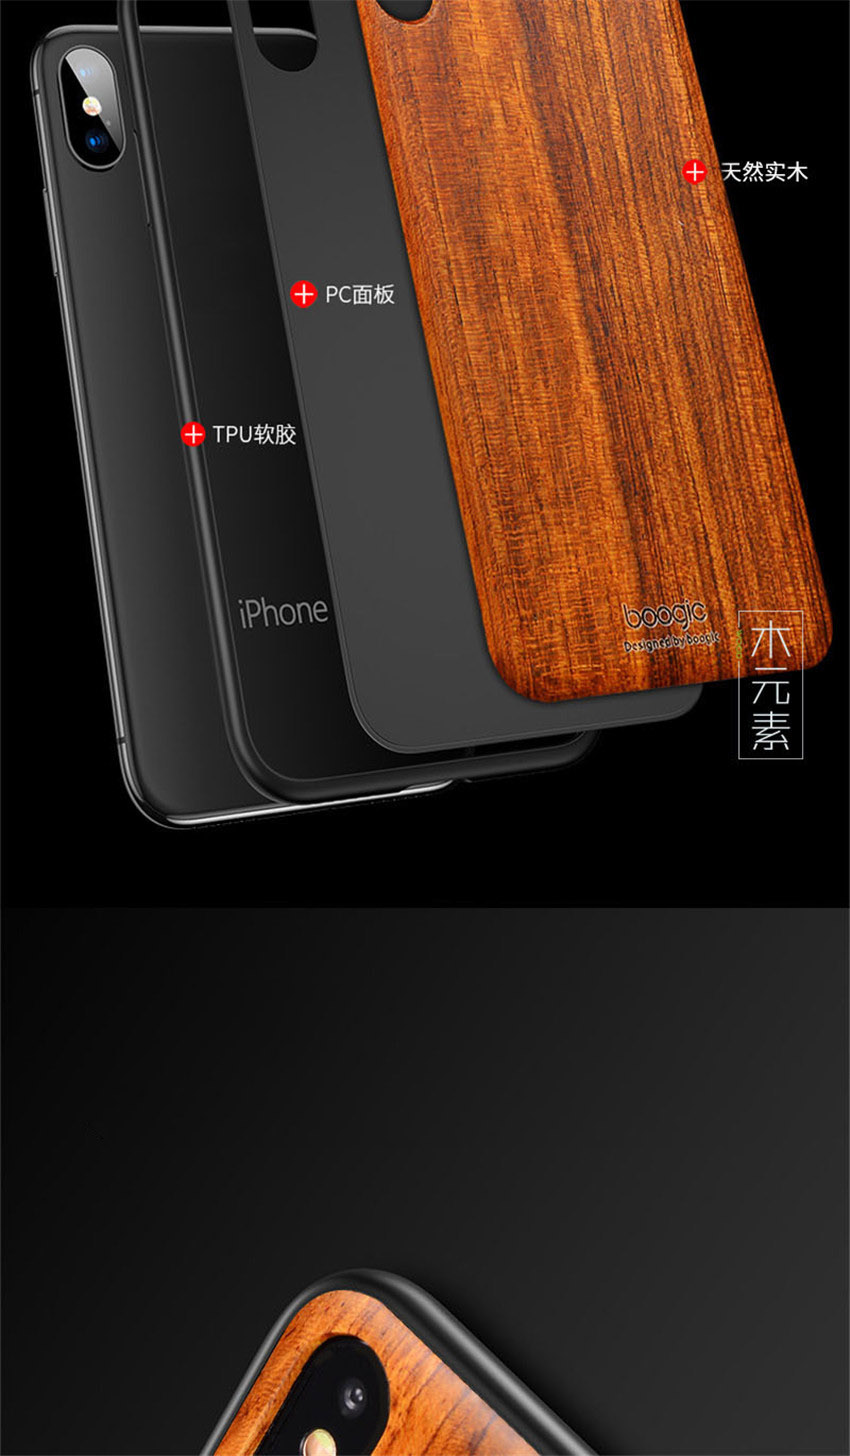 2018 New For iPhone XS Max Case Slim Wood Back Cover TPU Bumper Case For iPhone X iPhone XS Phone Cases (4)